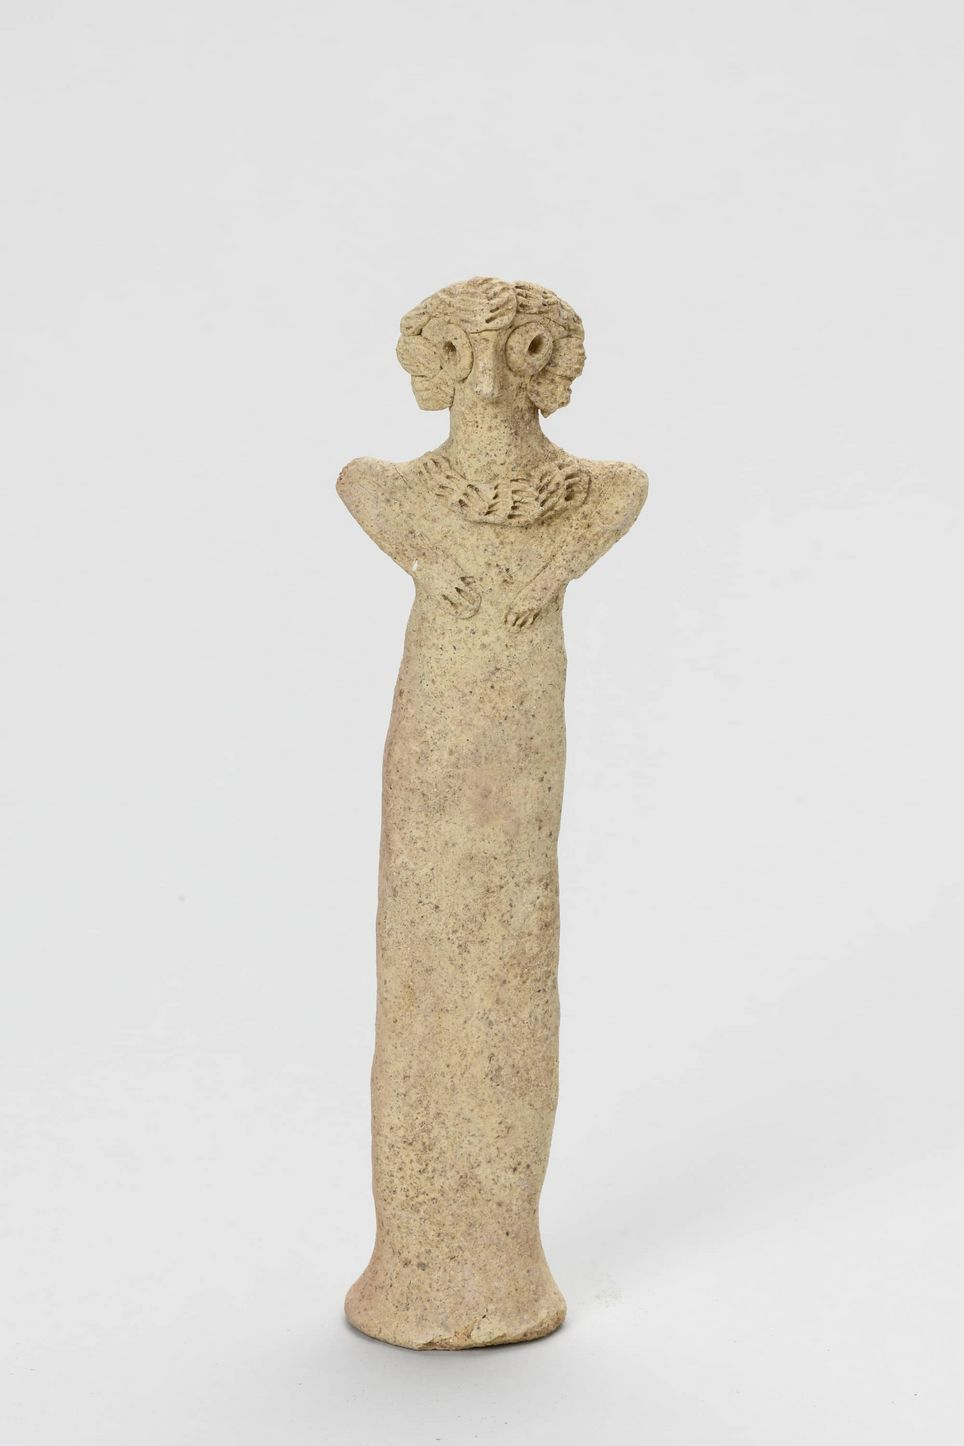 Ensemble de figurines féminines de type de la vallée de l'Euphrate